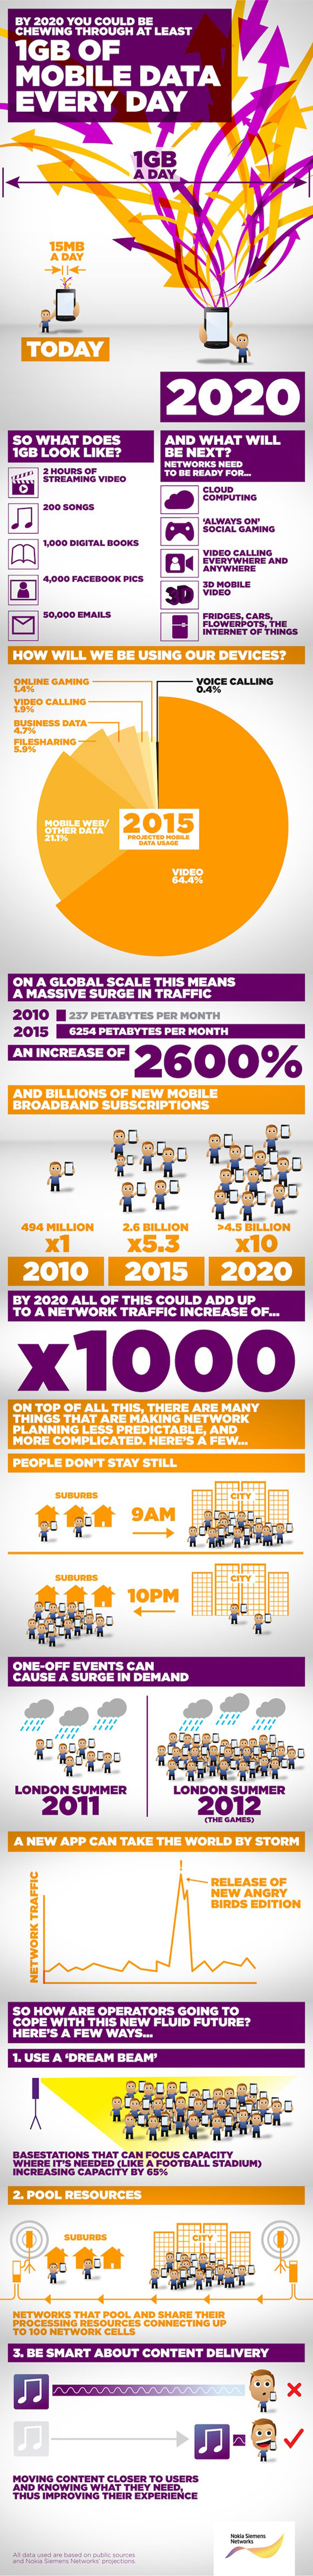 Mobile Broadband Trends Infographic